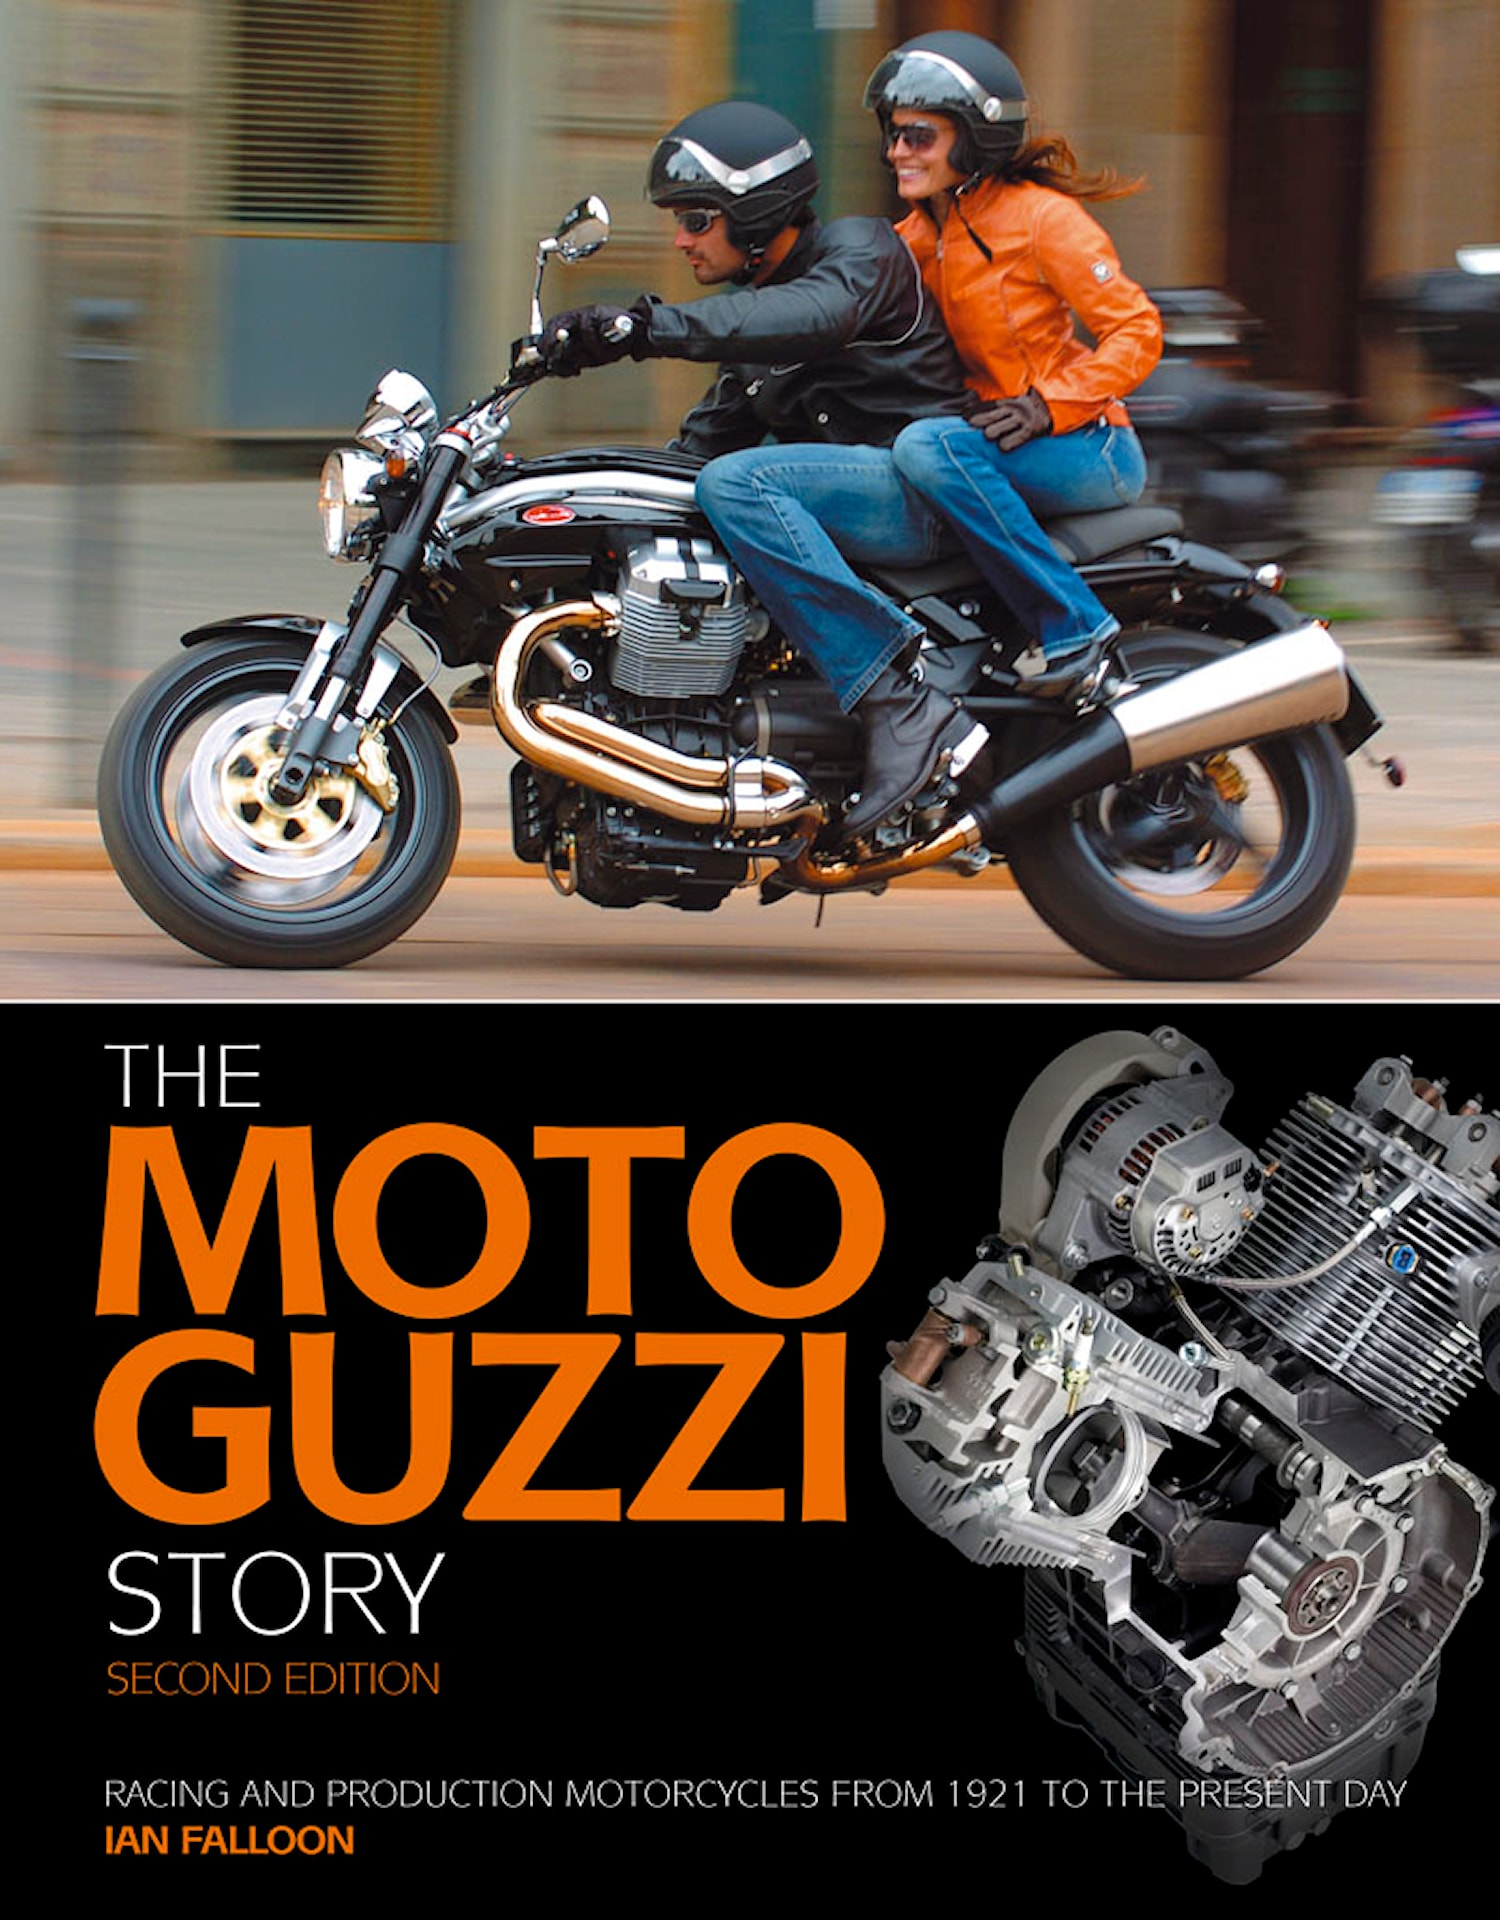 The Moto Guzzi Story 2nd editi